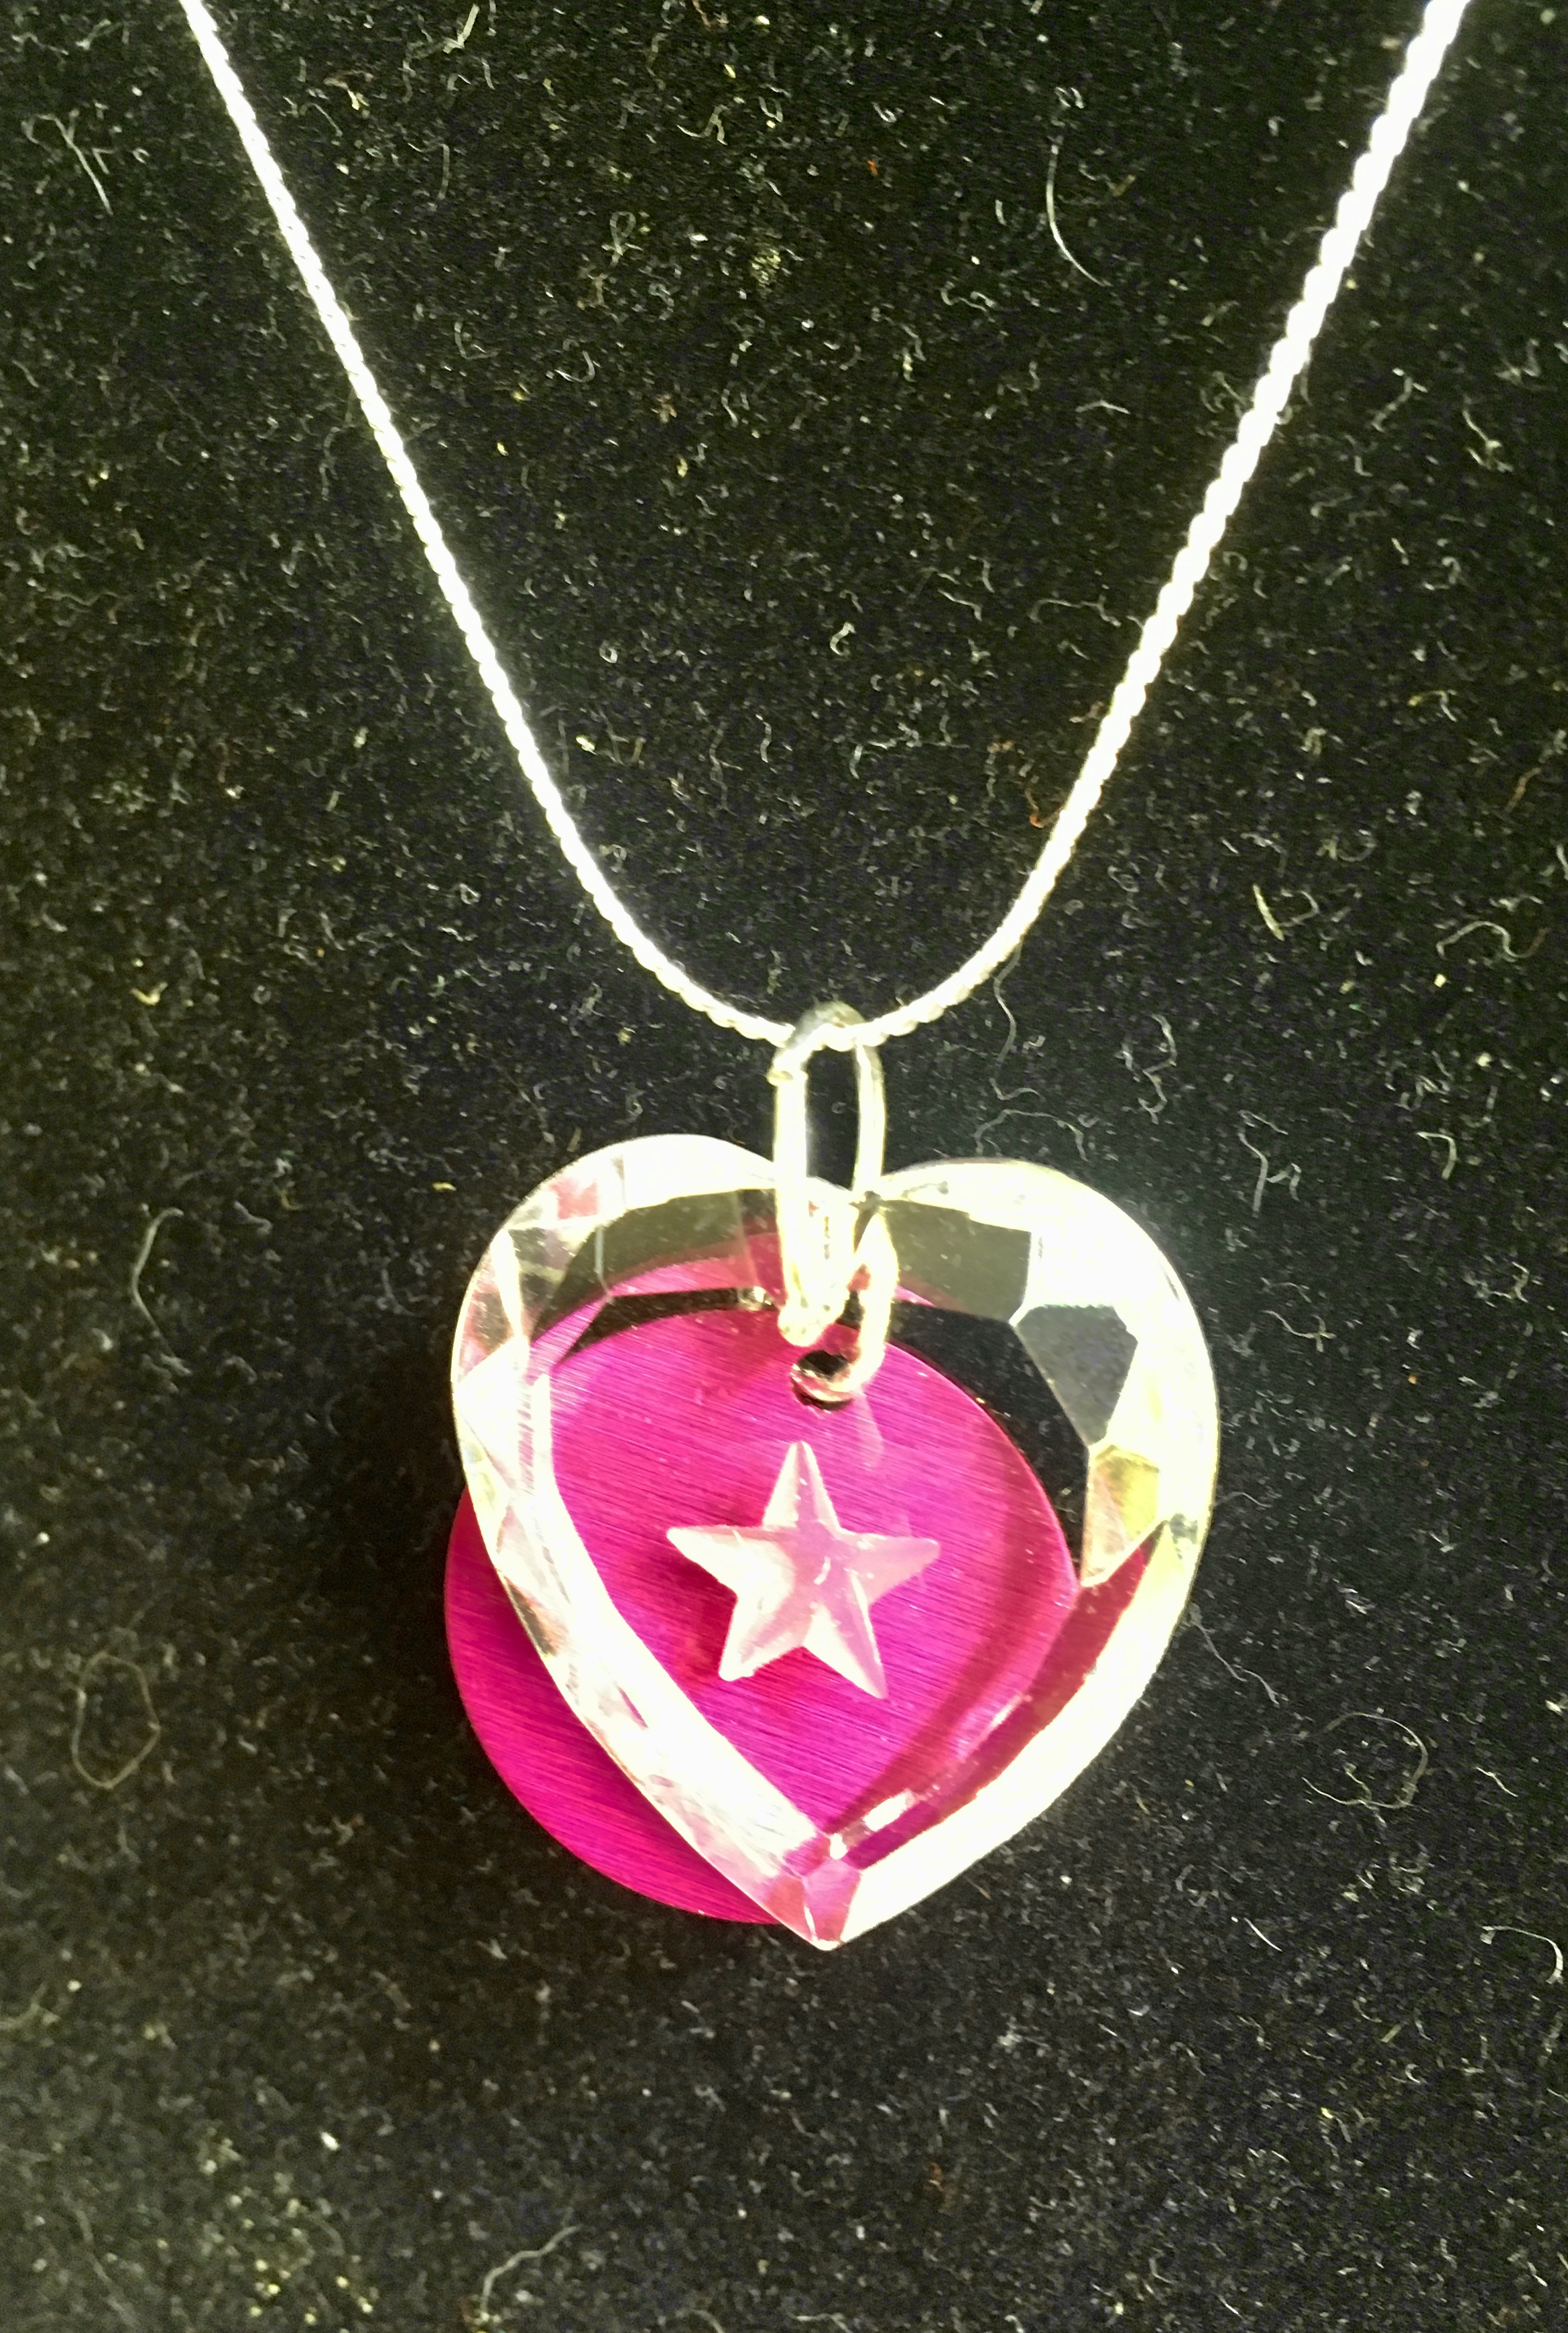 Crystal Heart w/ Incised Star & Purple Energy Disk Pendant